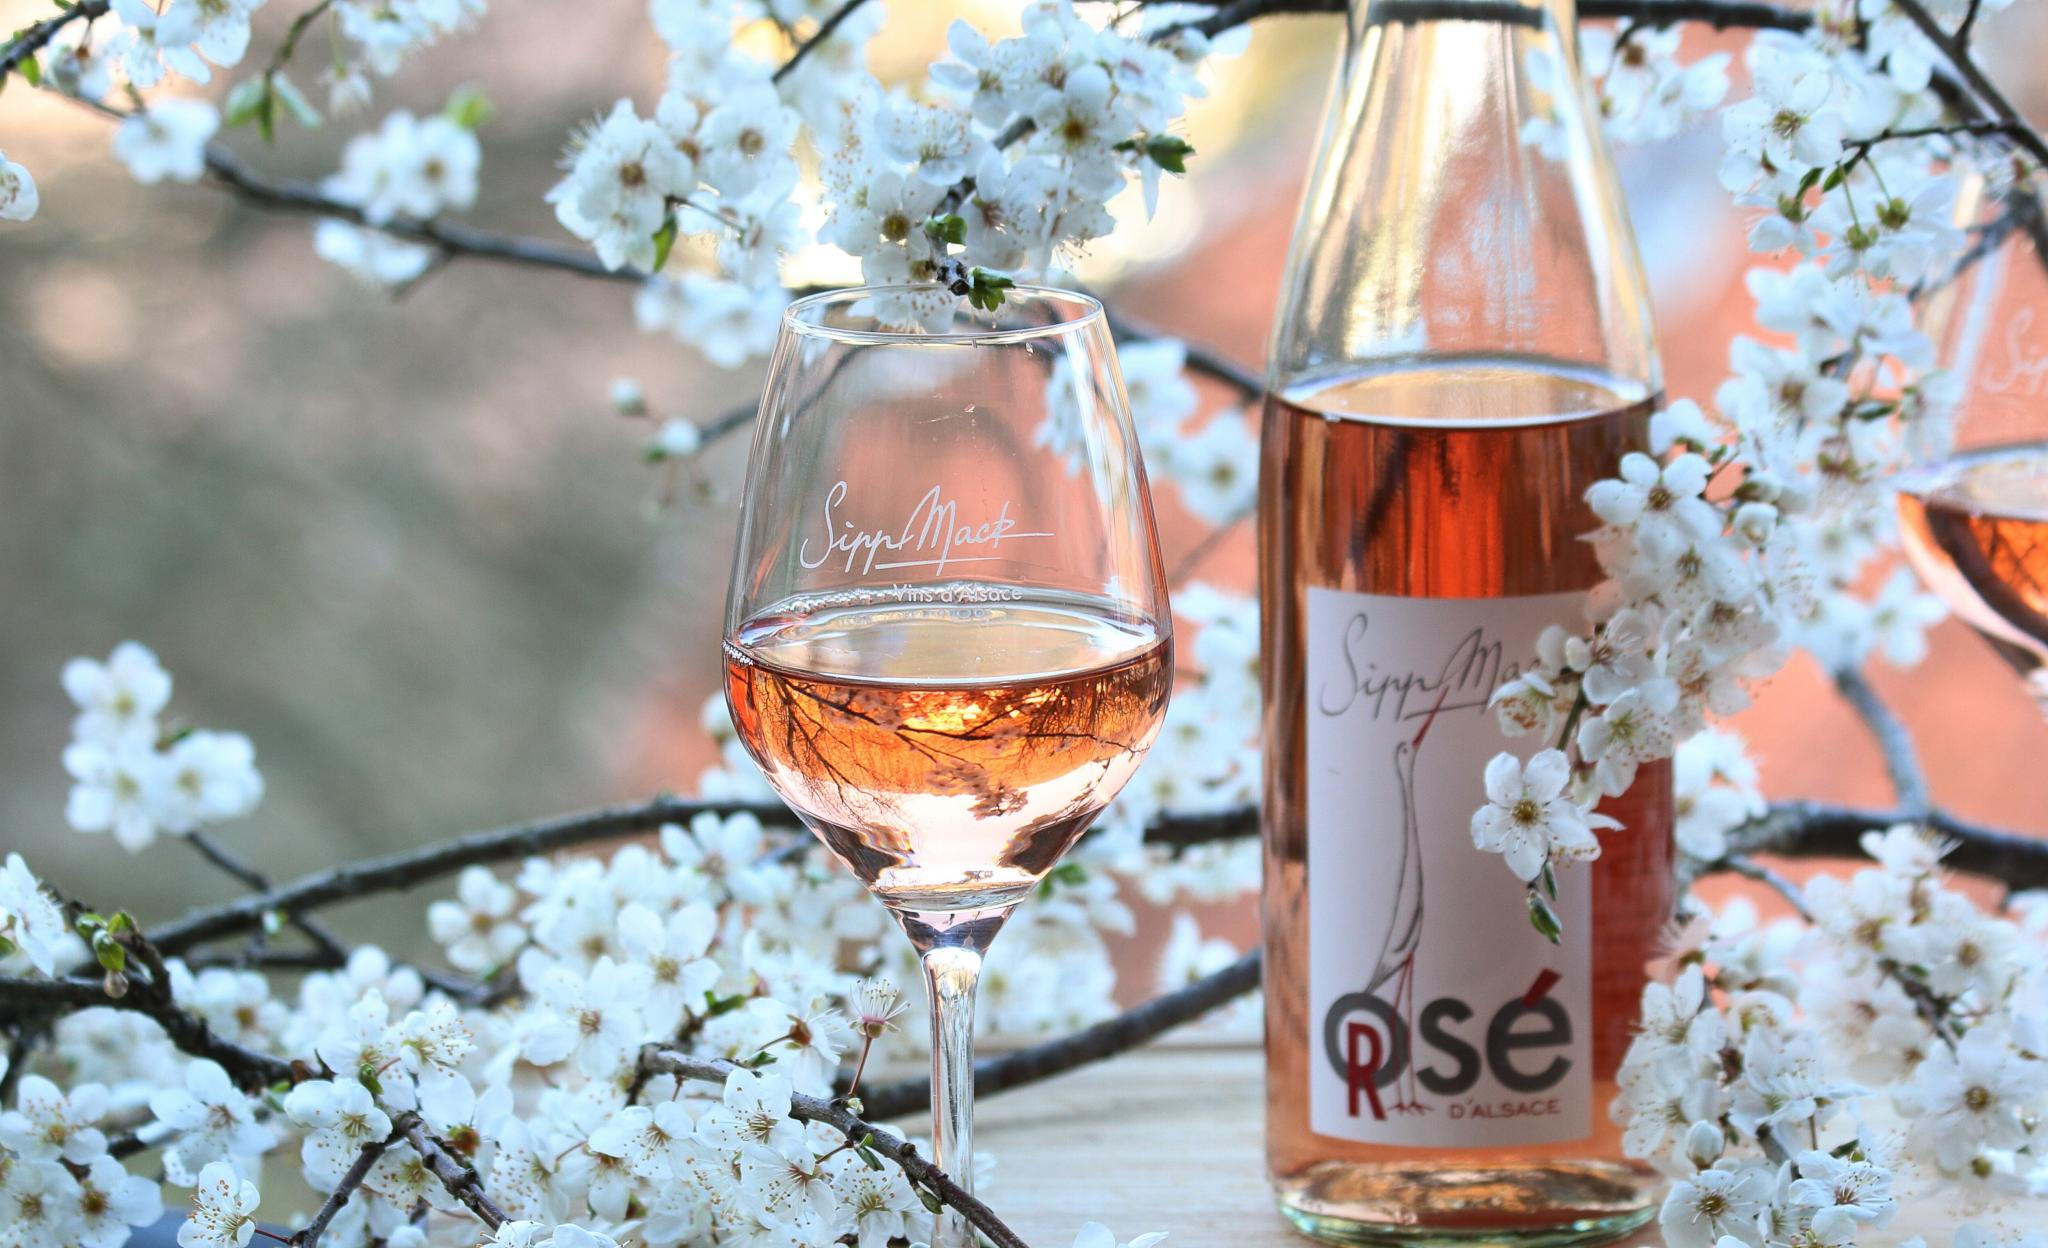 Rosé and cherry blossoms